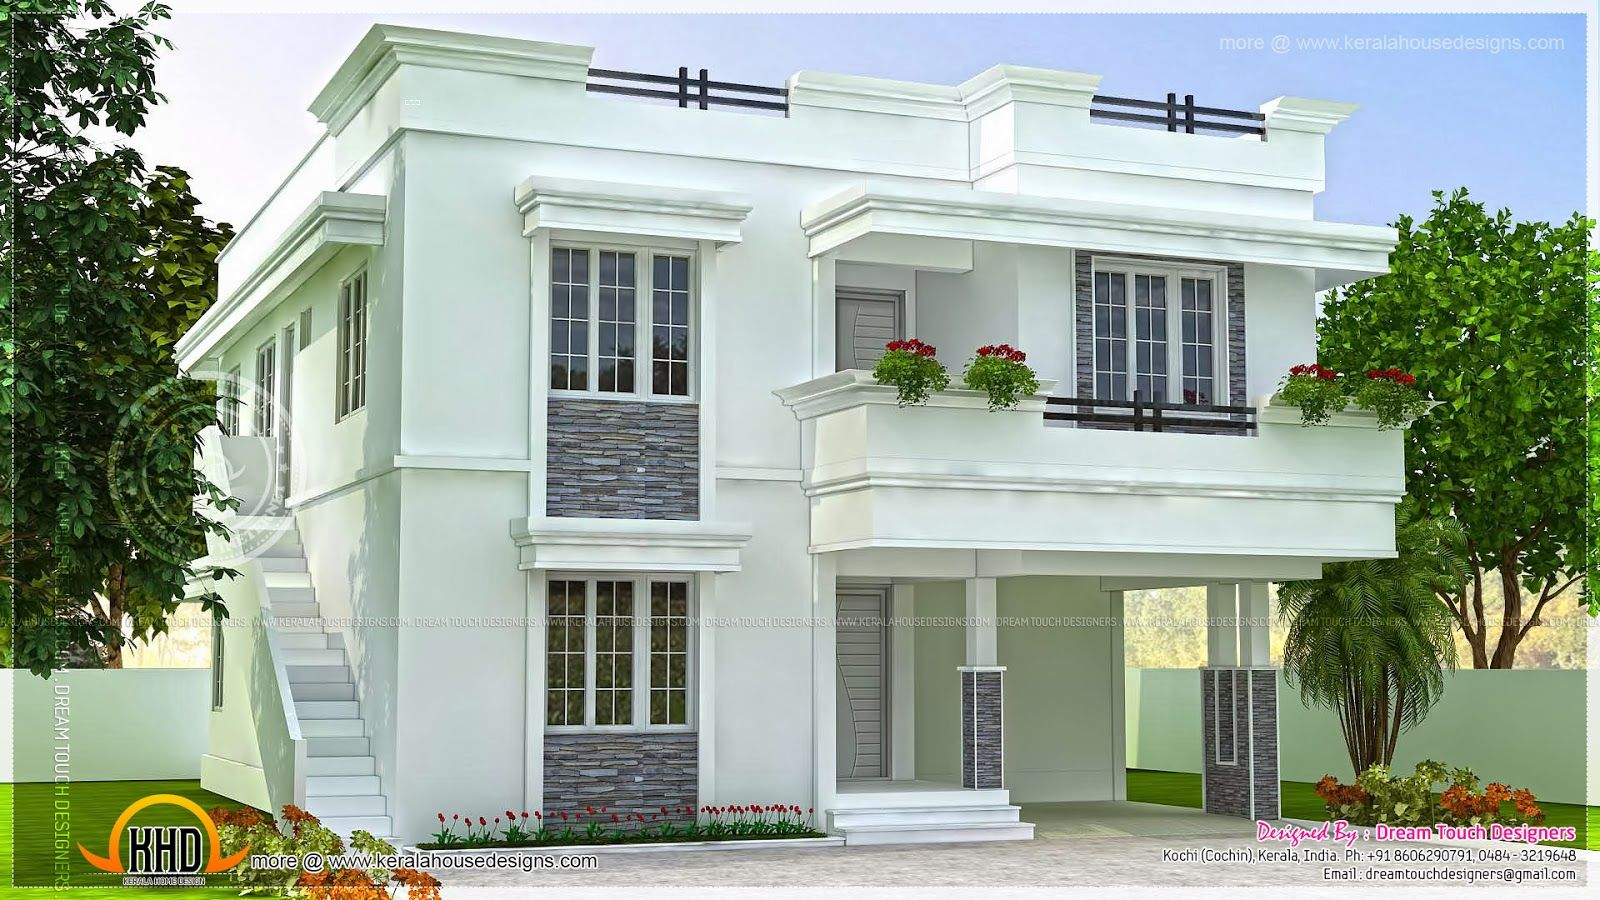 Modern Beautiful Home Modern Beautiful Home Design Indian: beautiful home designs inside